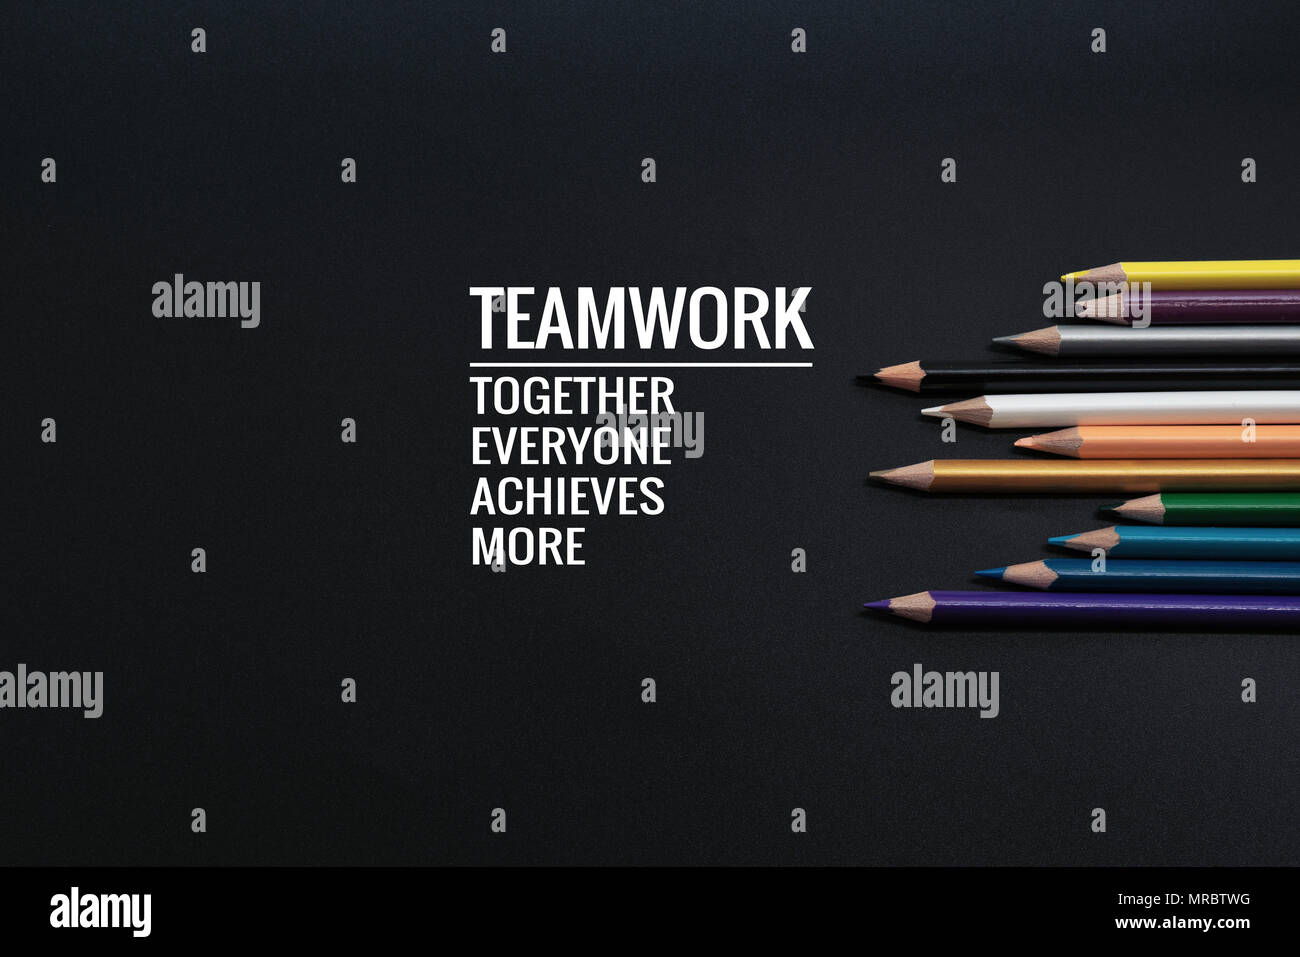 Teamwork concept. group of color pencil on black background with word Teamwork, Together, Everyone, Achieves and More - Stock Image